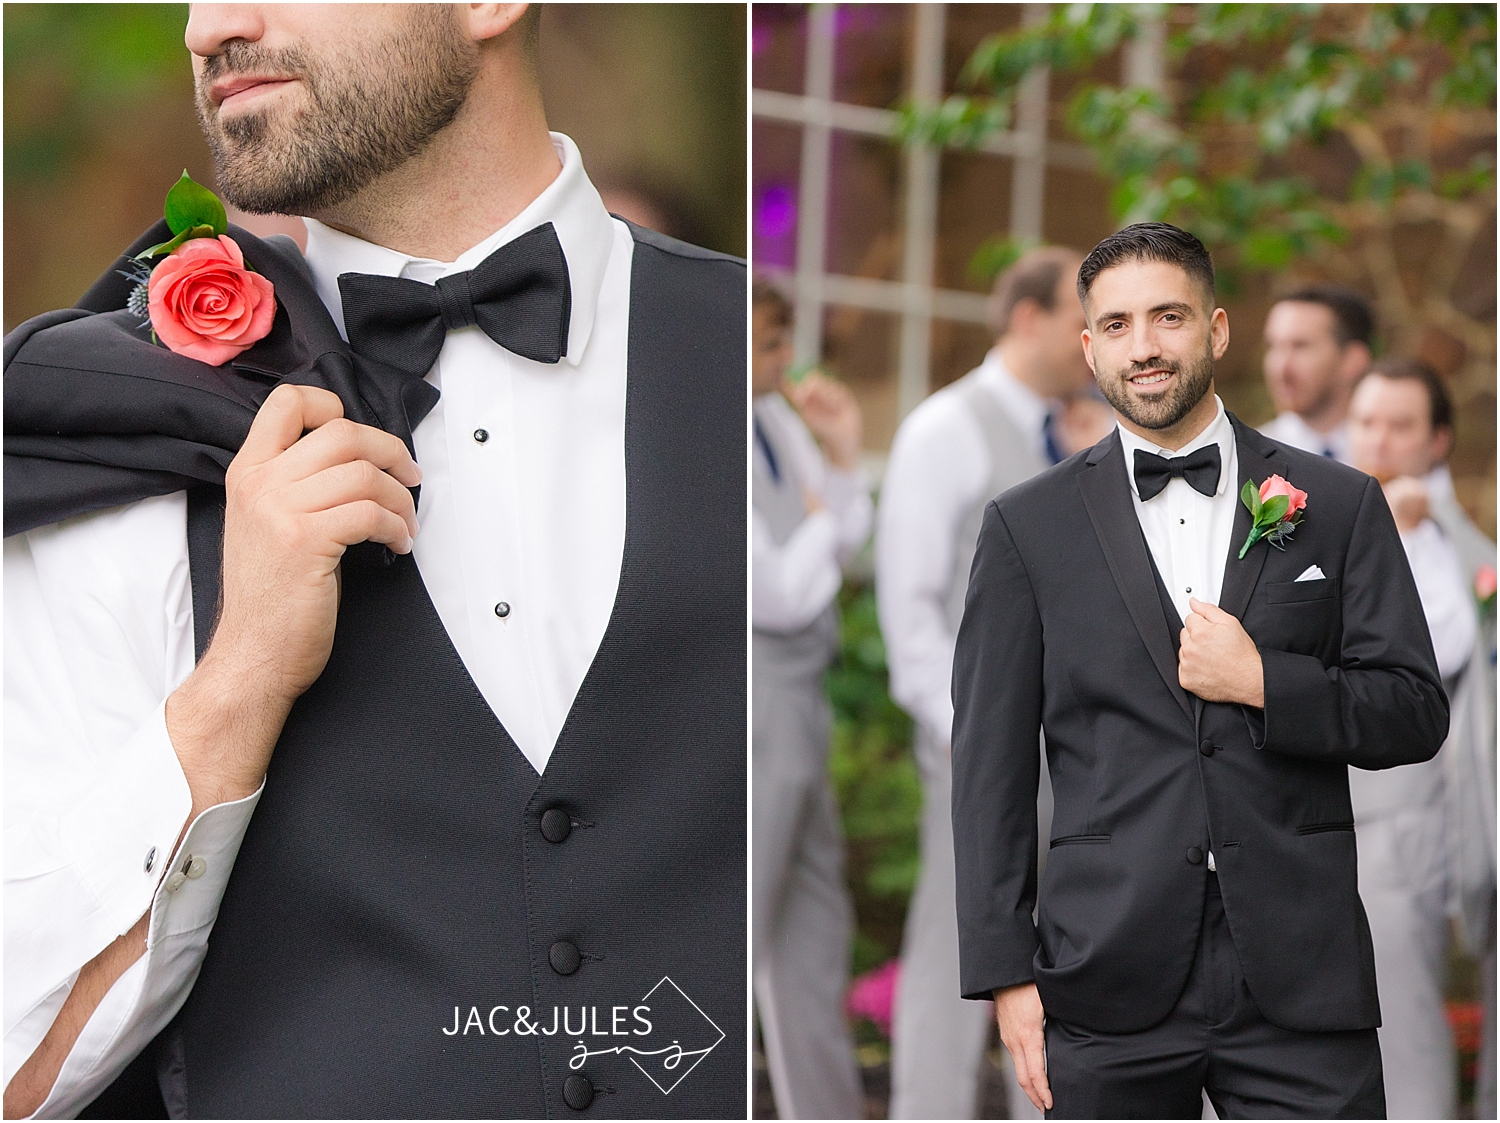 jacnjules photograph a groom on his wedding day in Smithville Village NJ